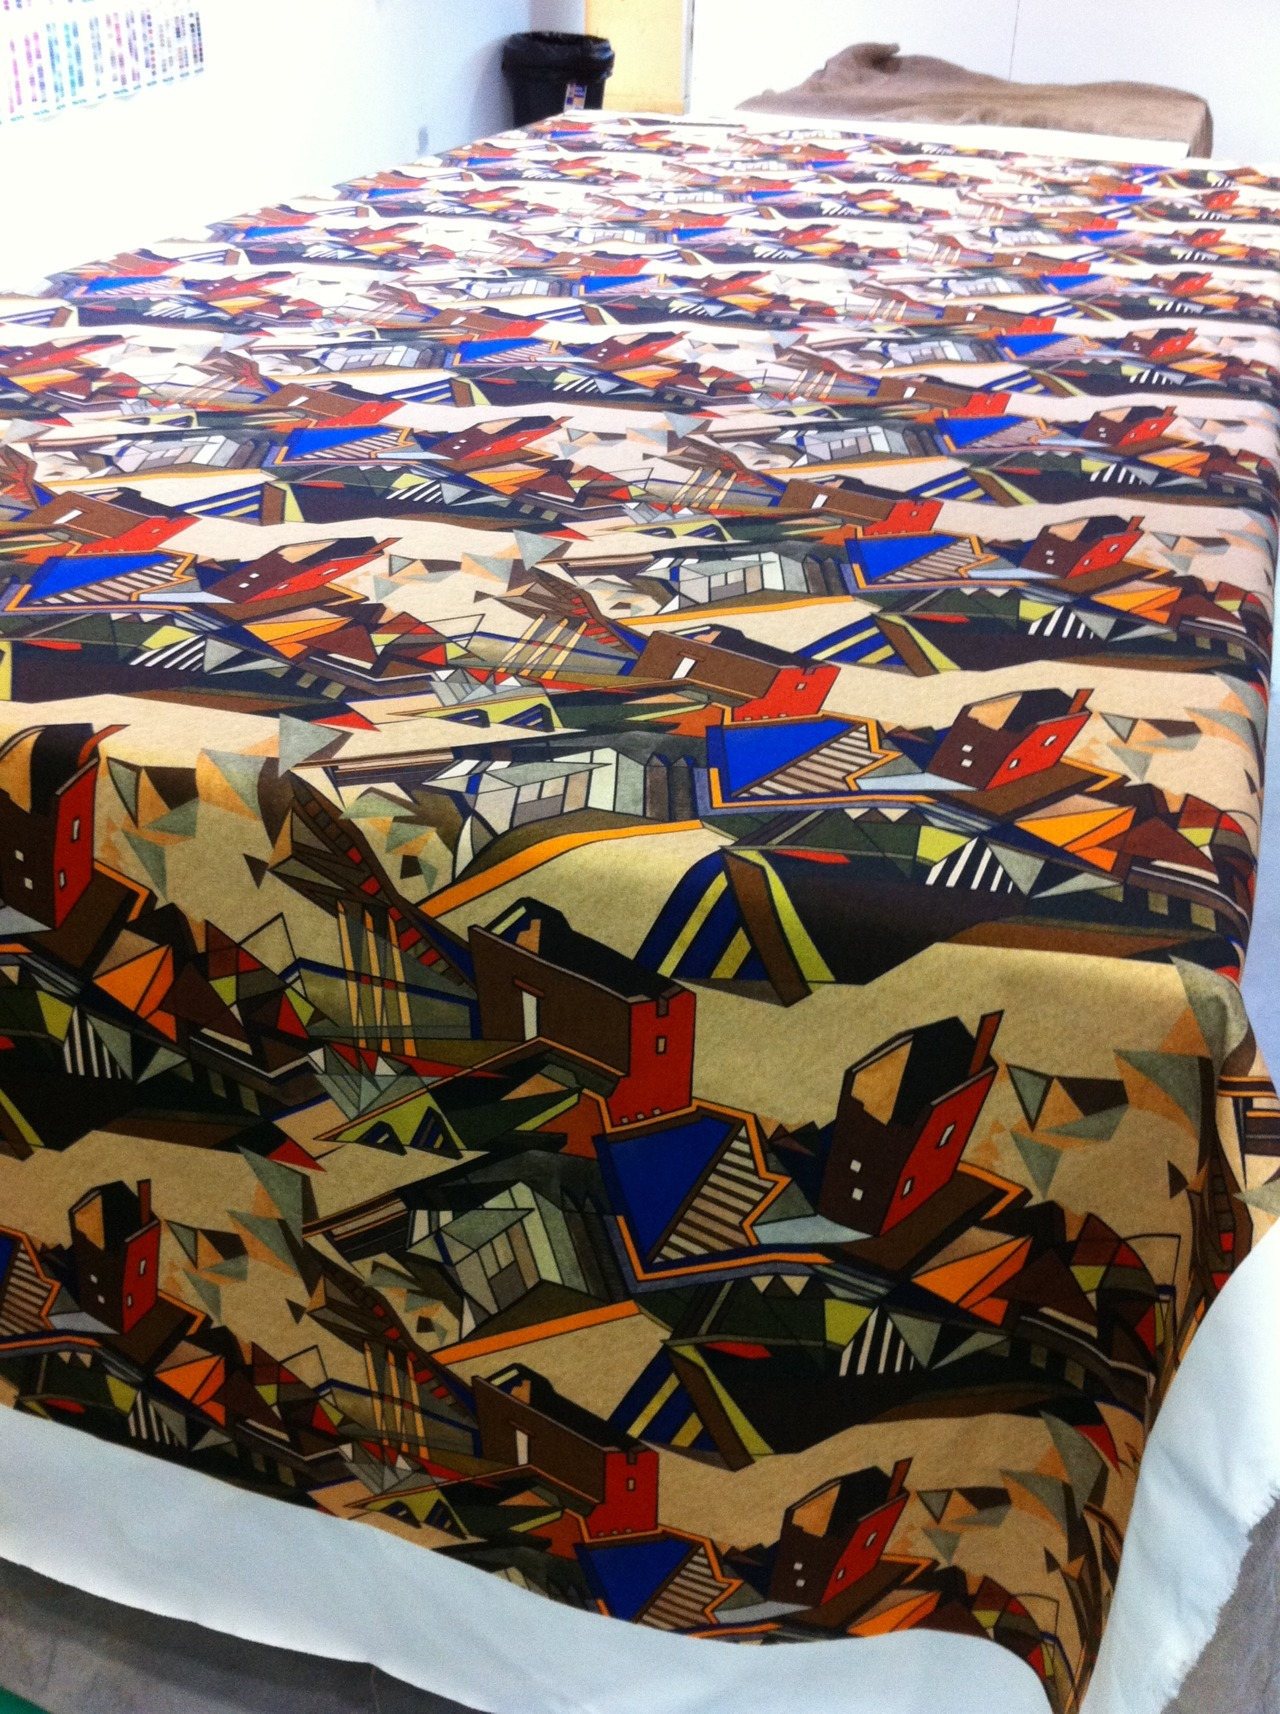 Digitally printed length one from my first collection of interiors - design is half drop repeat on cotton drill fabric… interior weight with twill structure and takes the colour well.